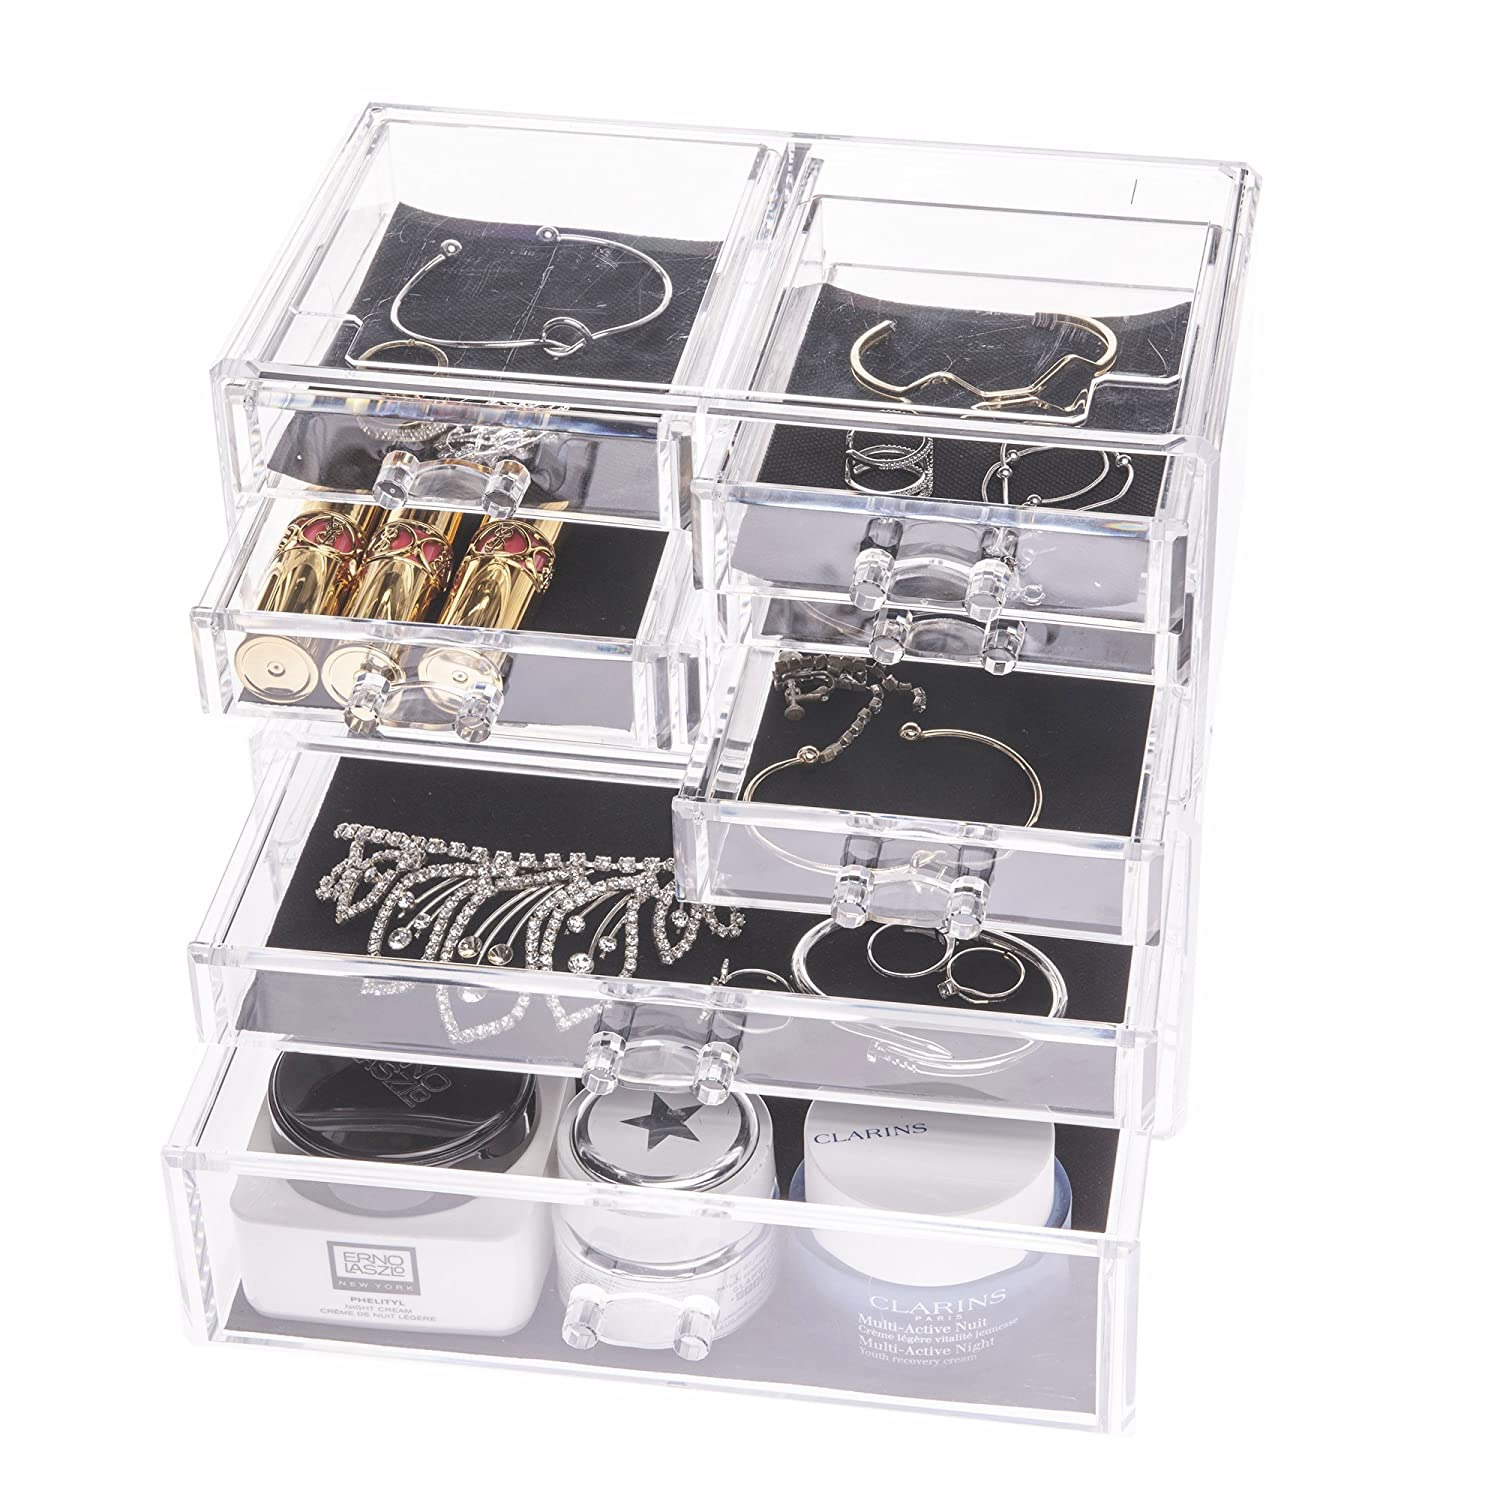 Choice Fun Jewelry Box Makeup Organizer Rings Earrings Necklace Storage 8 Drawers Clear CA-QFJJSN-SF-1005-52